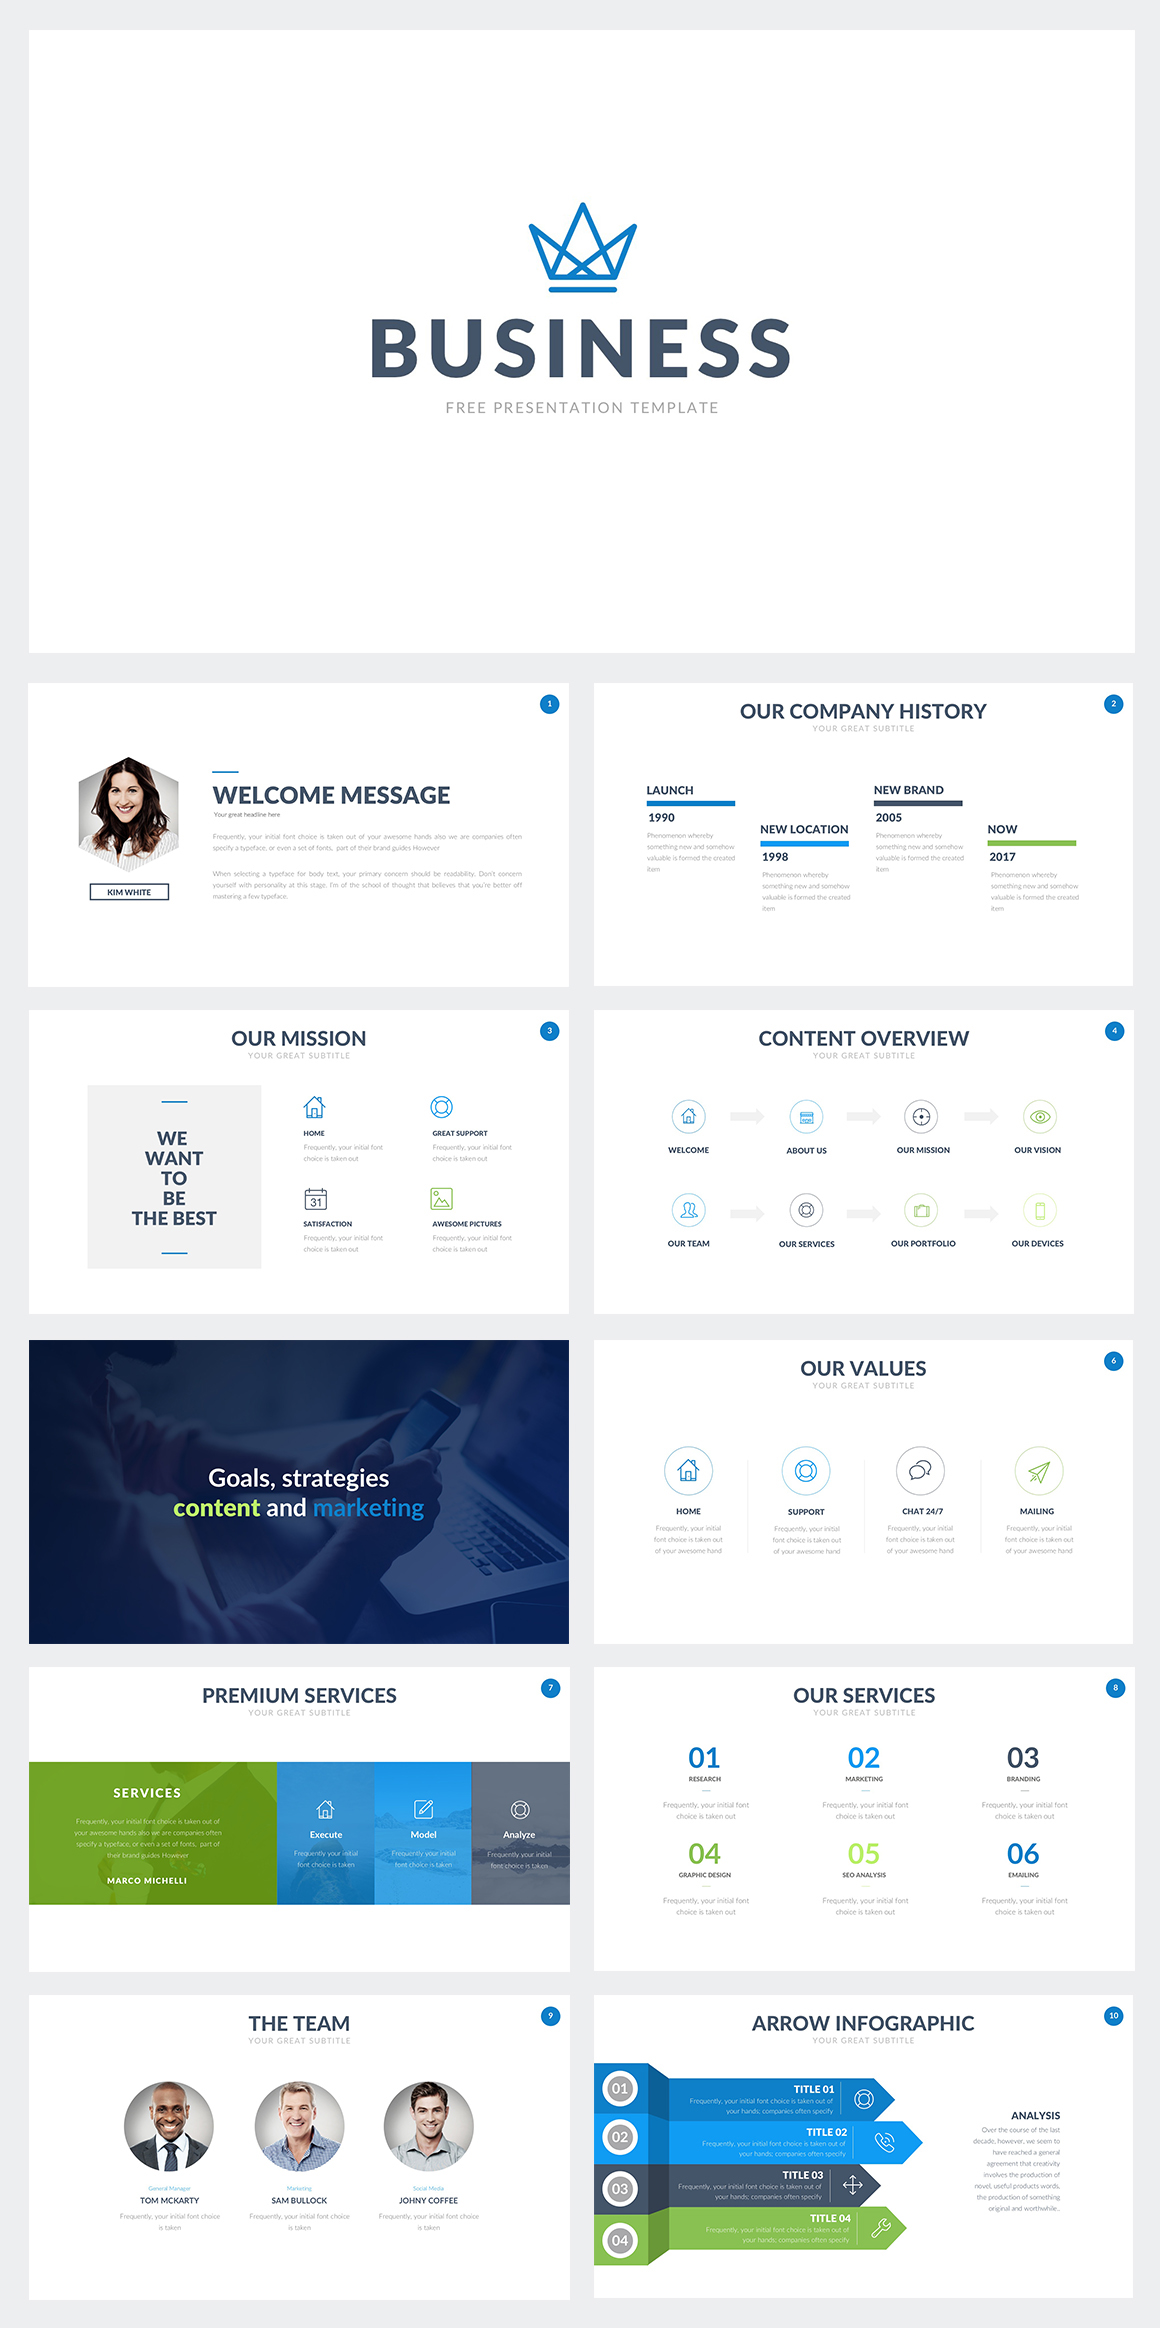 Free business powerpoint template on behance free business powerpoint template here wajeb Gallery